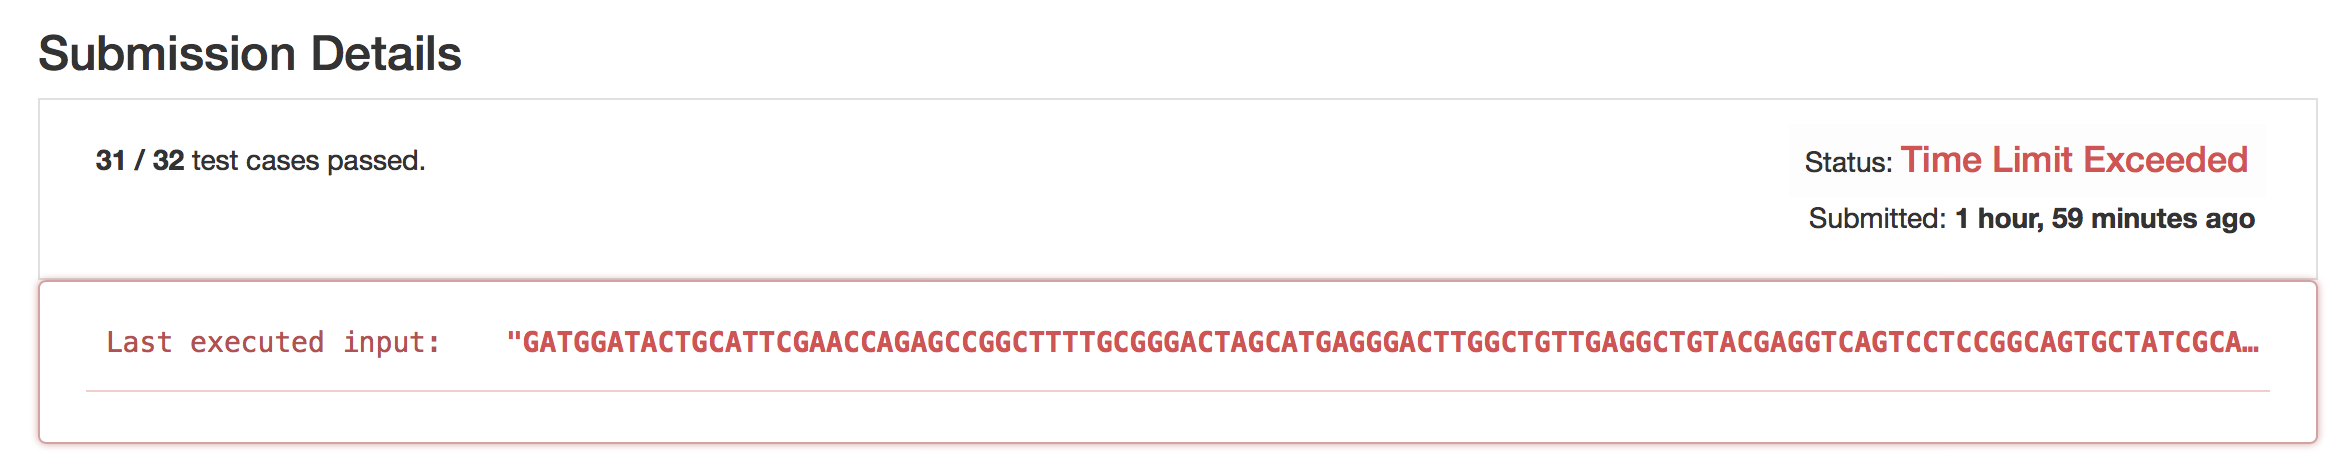 repeated-dna-sequences-2